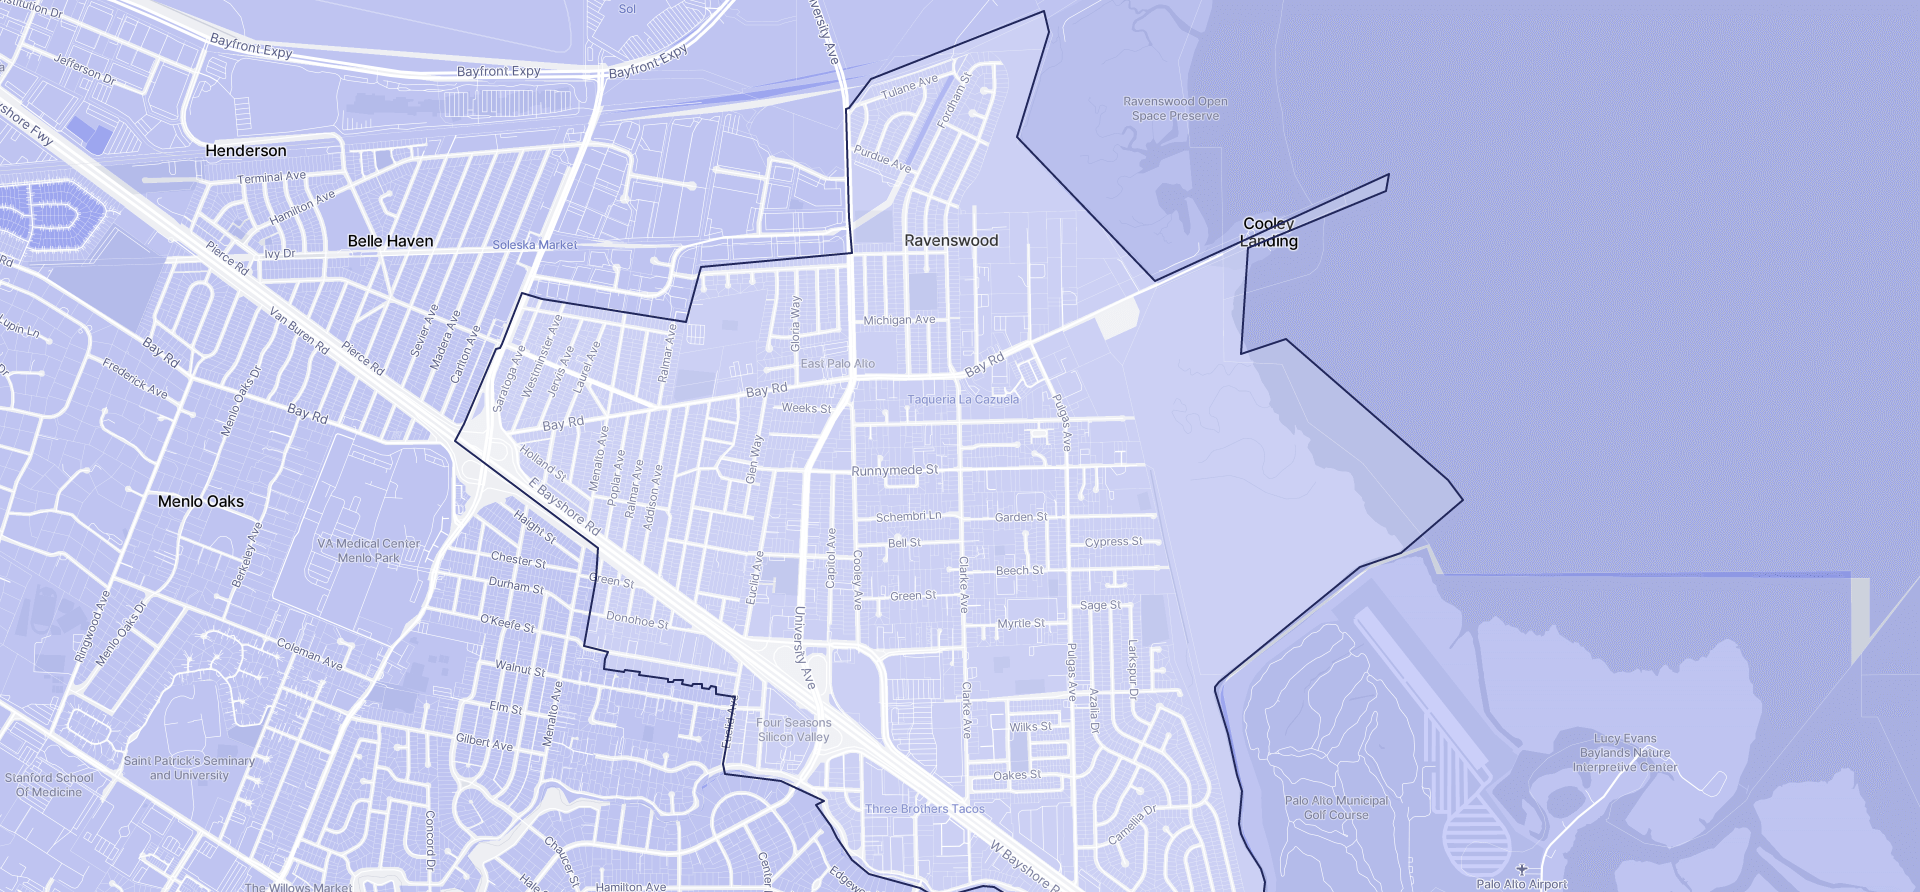 Image of East Palo Alto boundaries on a map.